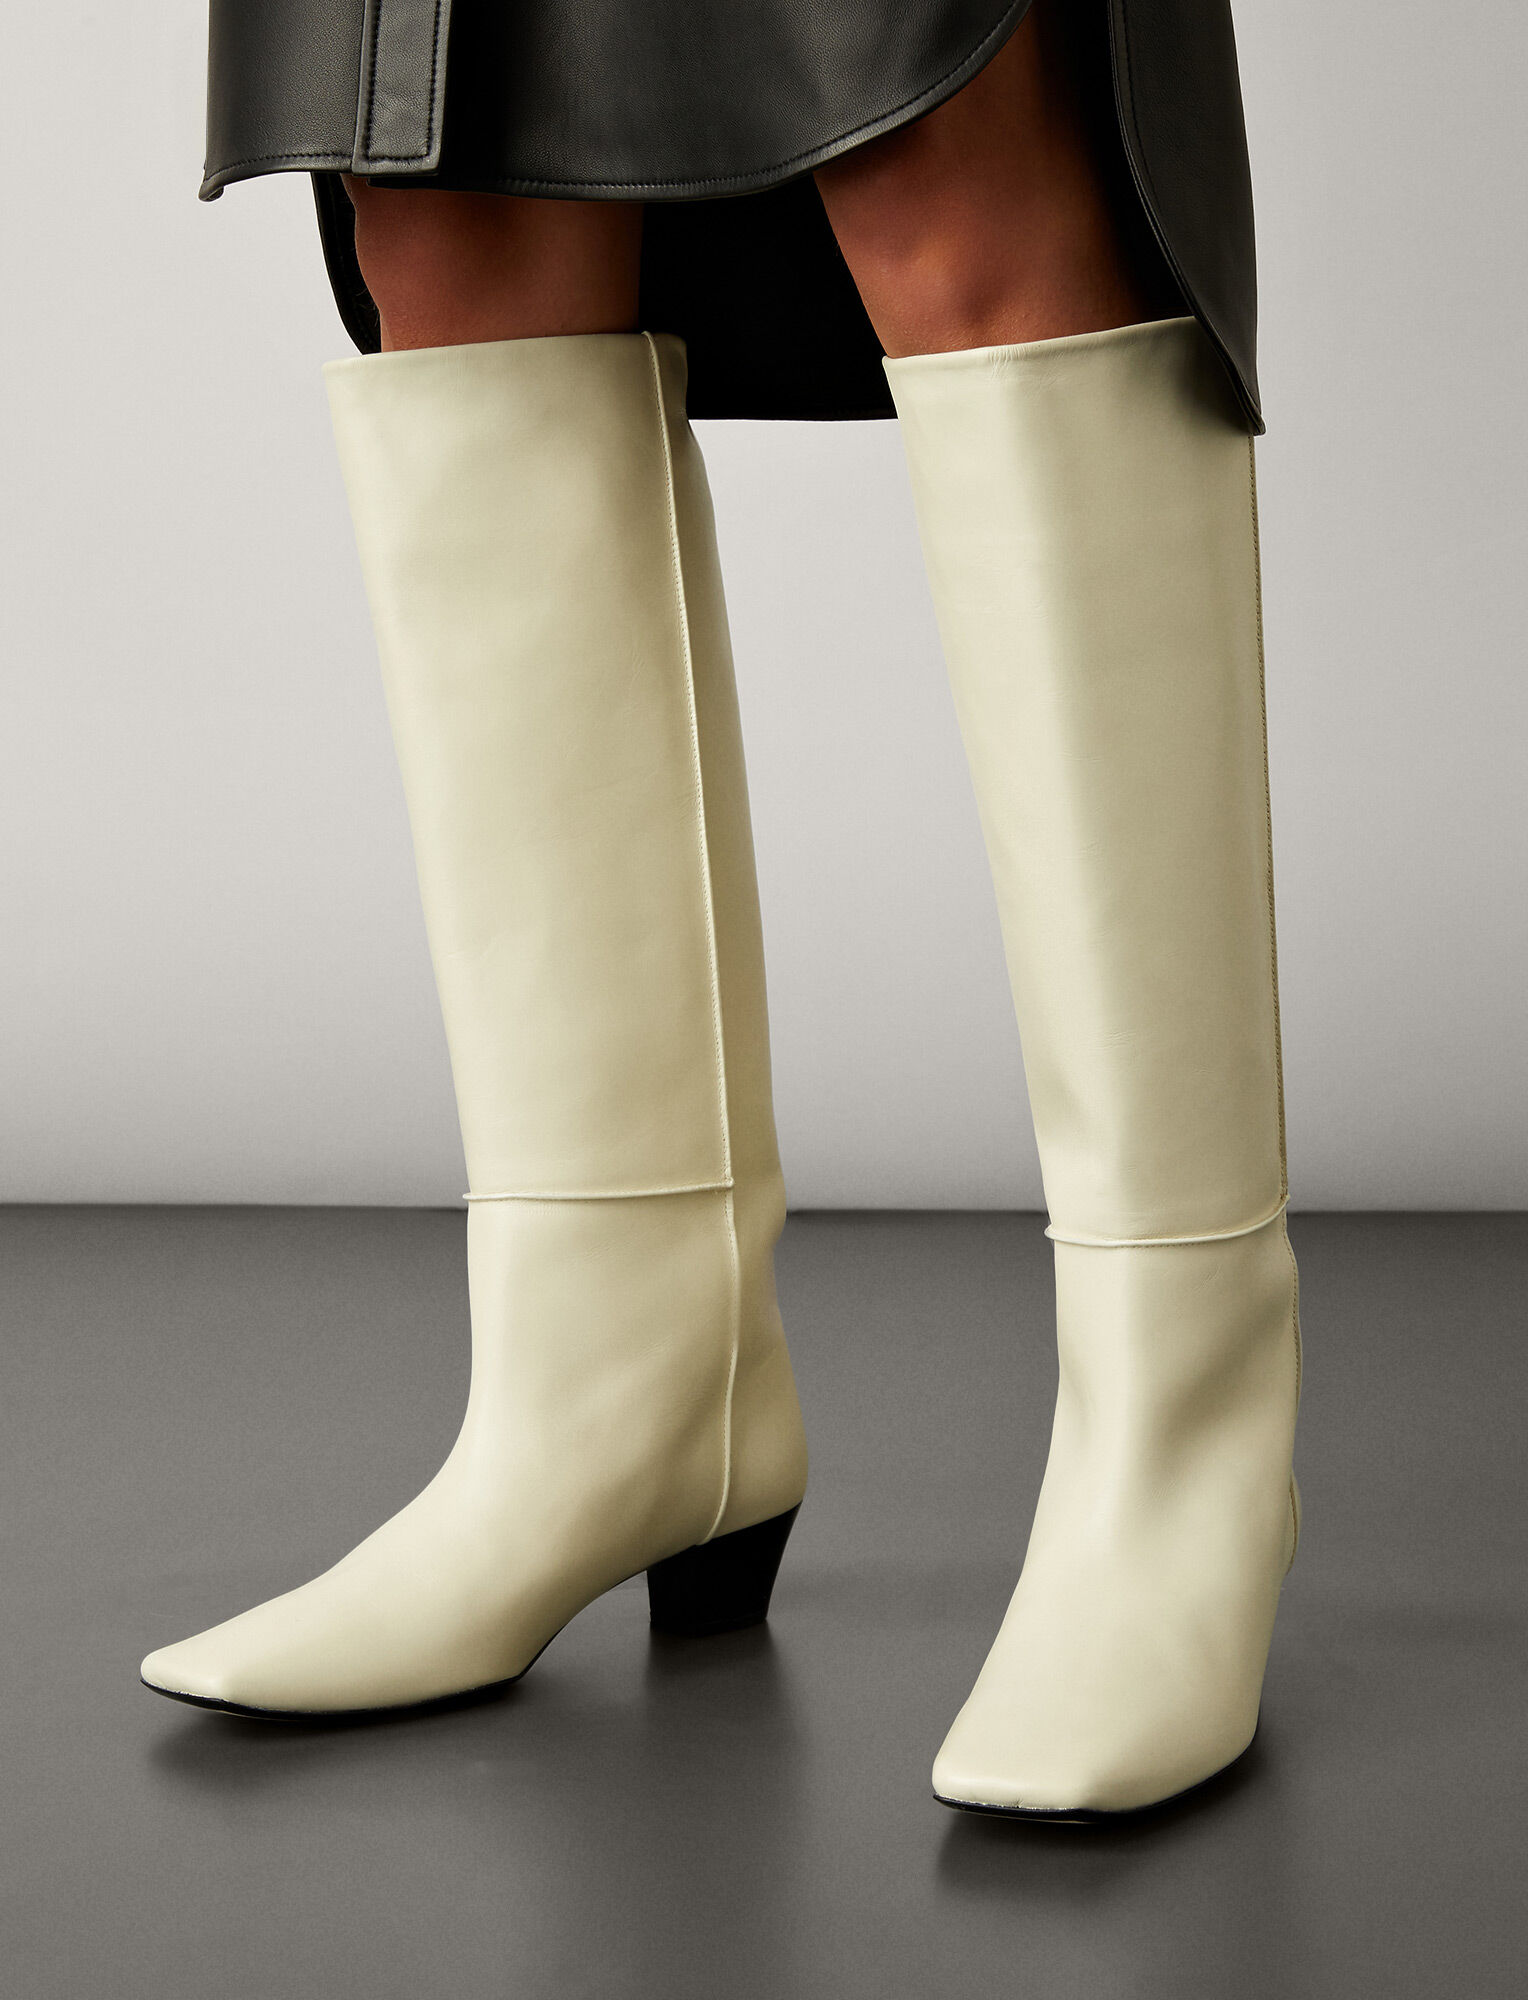 Joseph, Cynthia Long Boot, in WHITE